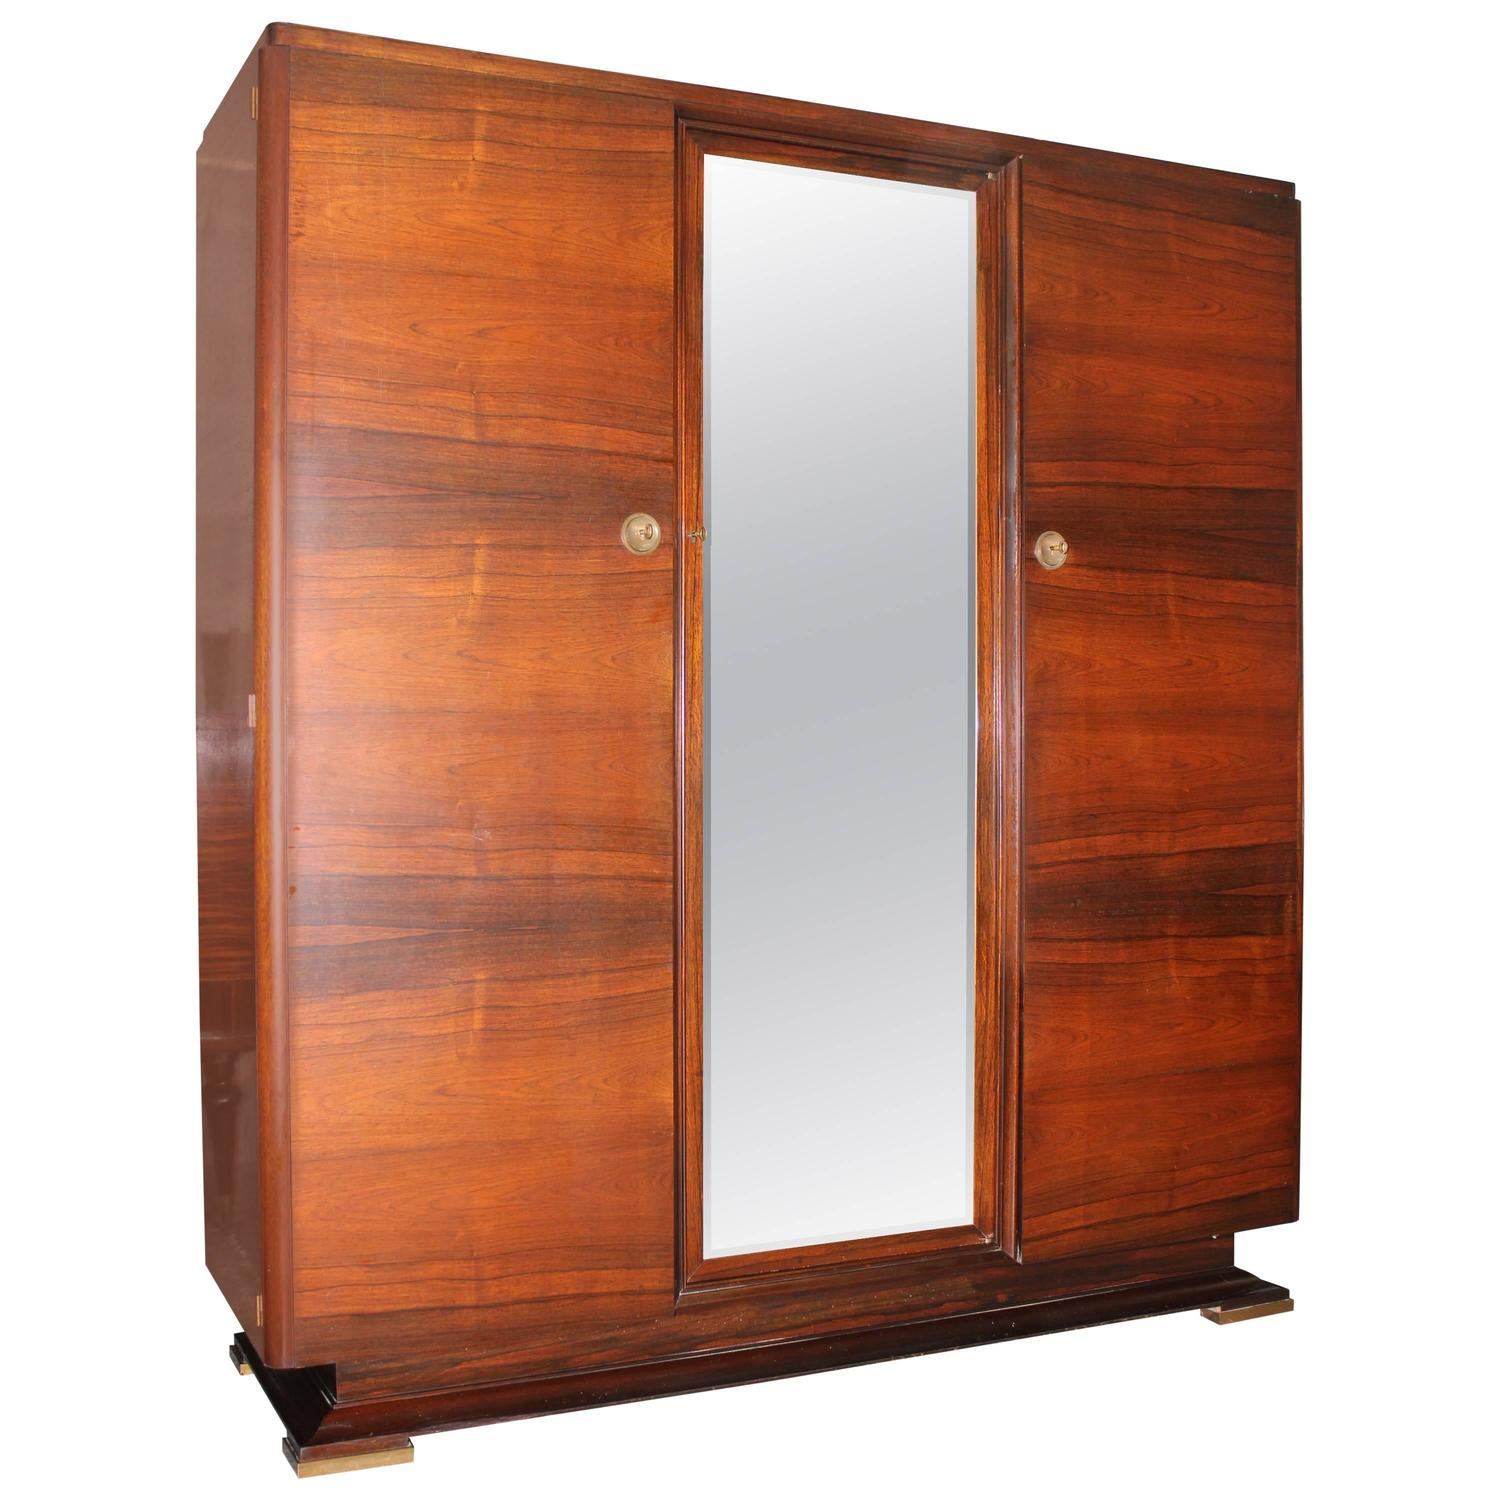 french art deco masterpiece palisander armoire by maxime old circa 1940s for sale at 1stdibs. Black Bedroom Furniture Sets. Home Design Ideas